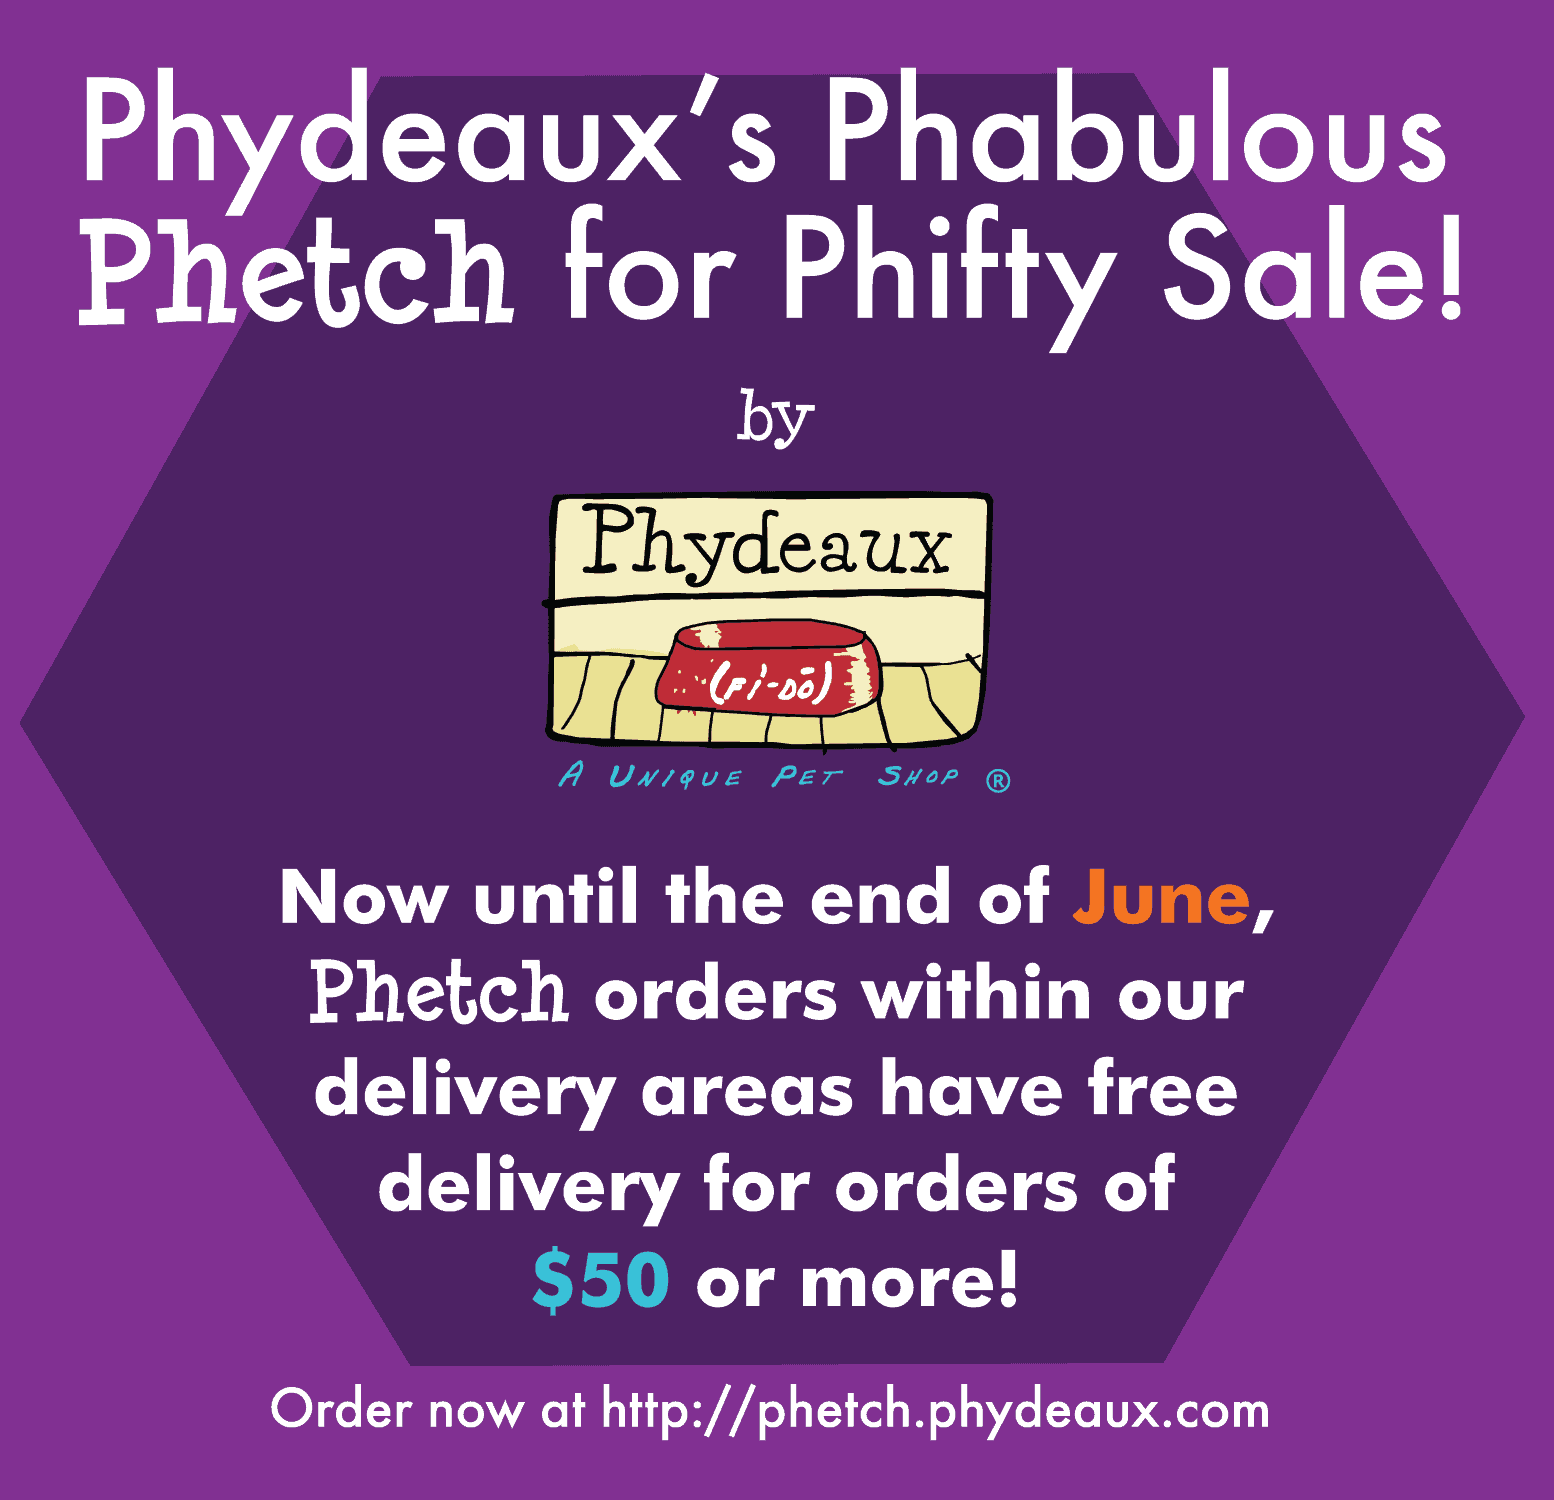 Phydeaux's Phabulous Phetch for Phifty Sale!